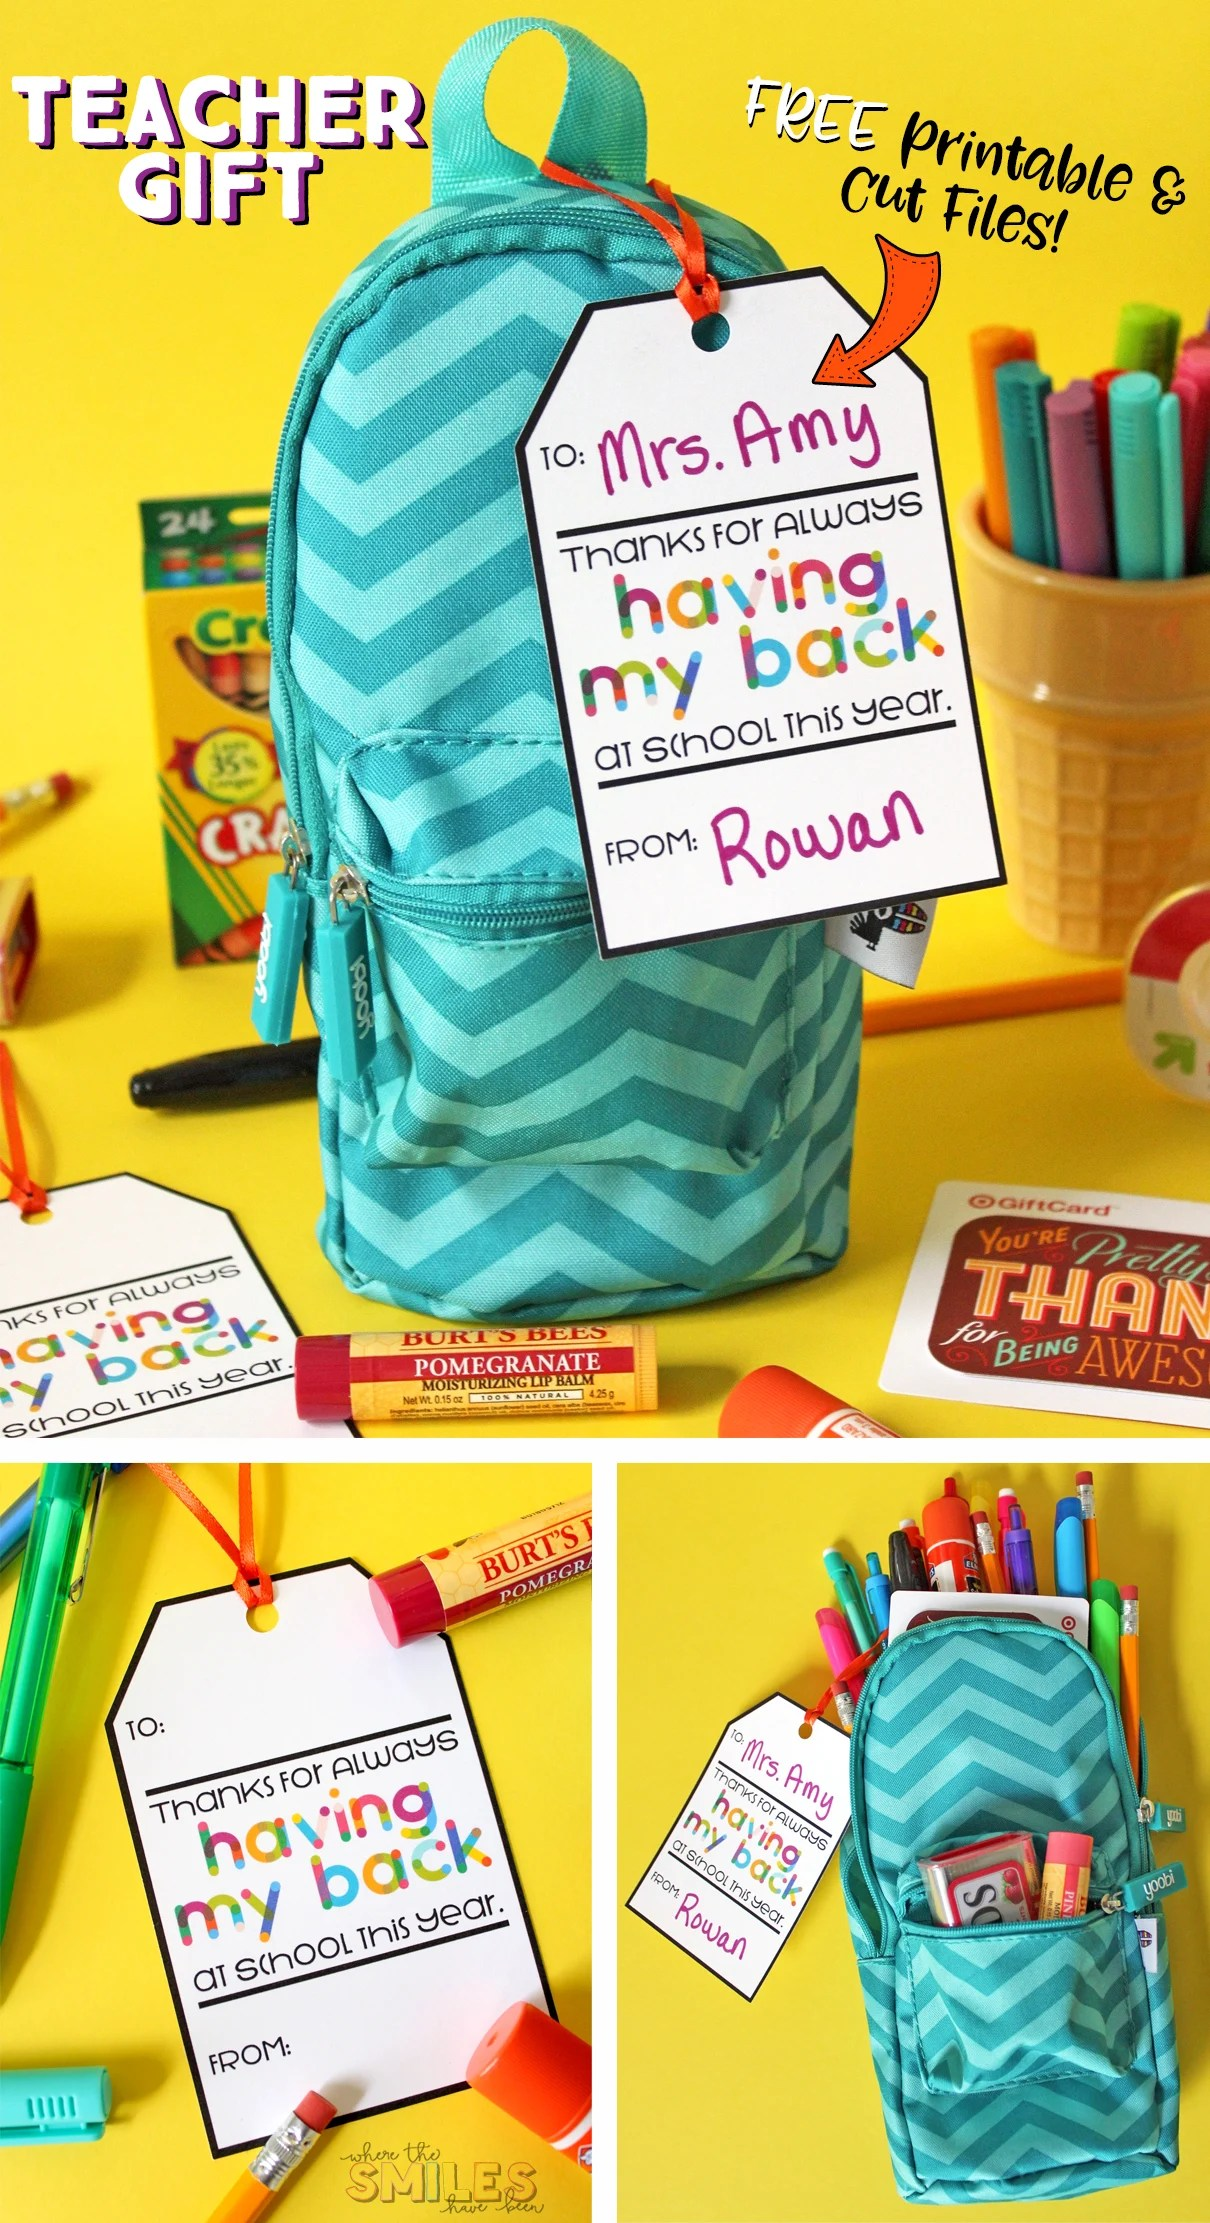 photo about Free Printable Teacher Appreciation Gift Tags titled Totally free Printable Trainer Reward Tag: Because of for Taking in My Again